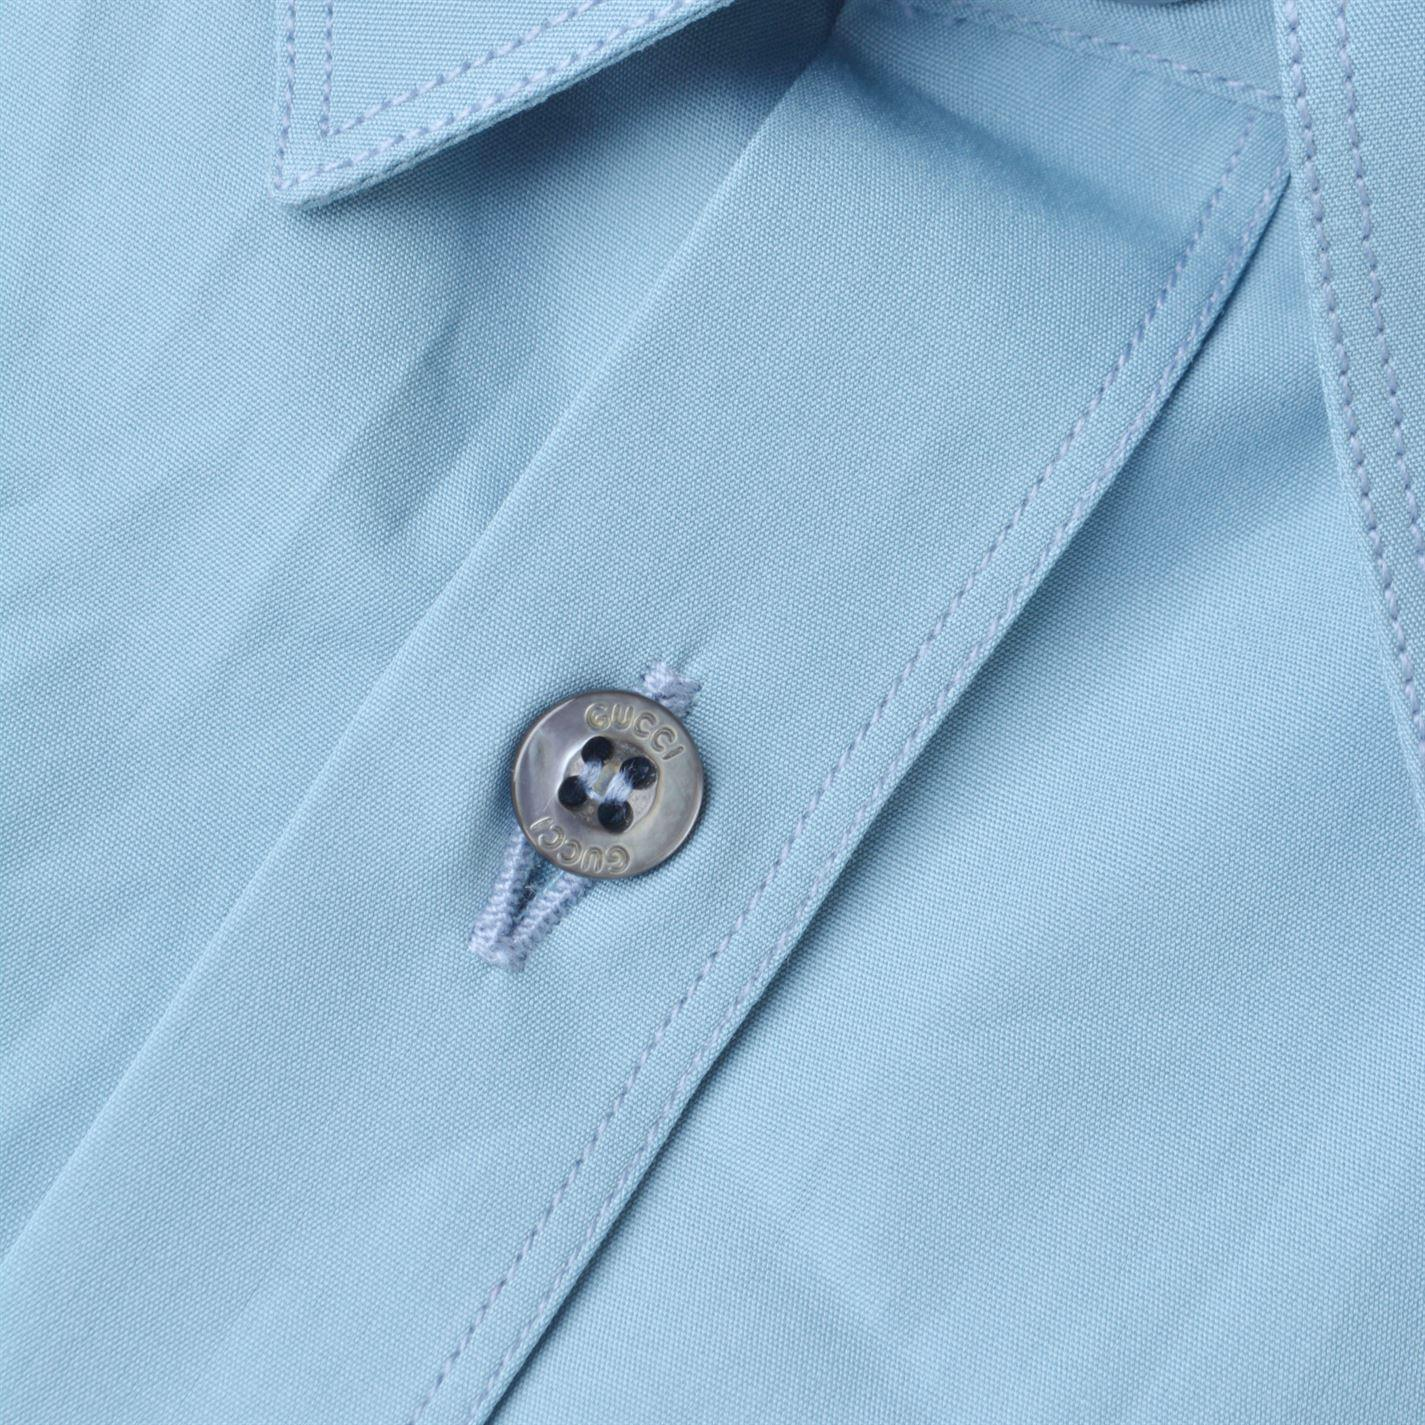 745d2110ee7 Lyst - Gucci Bee Patch Duke Shirt in Blue for Men